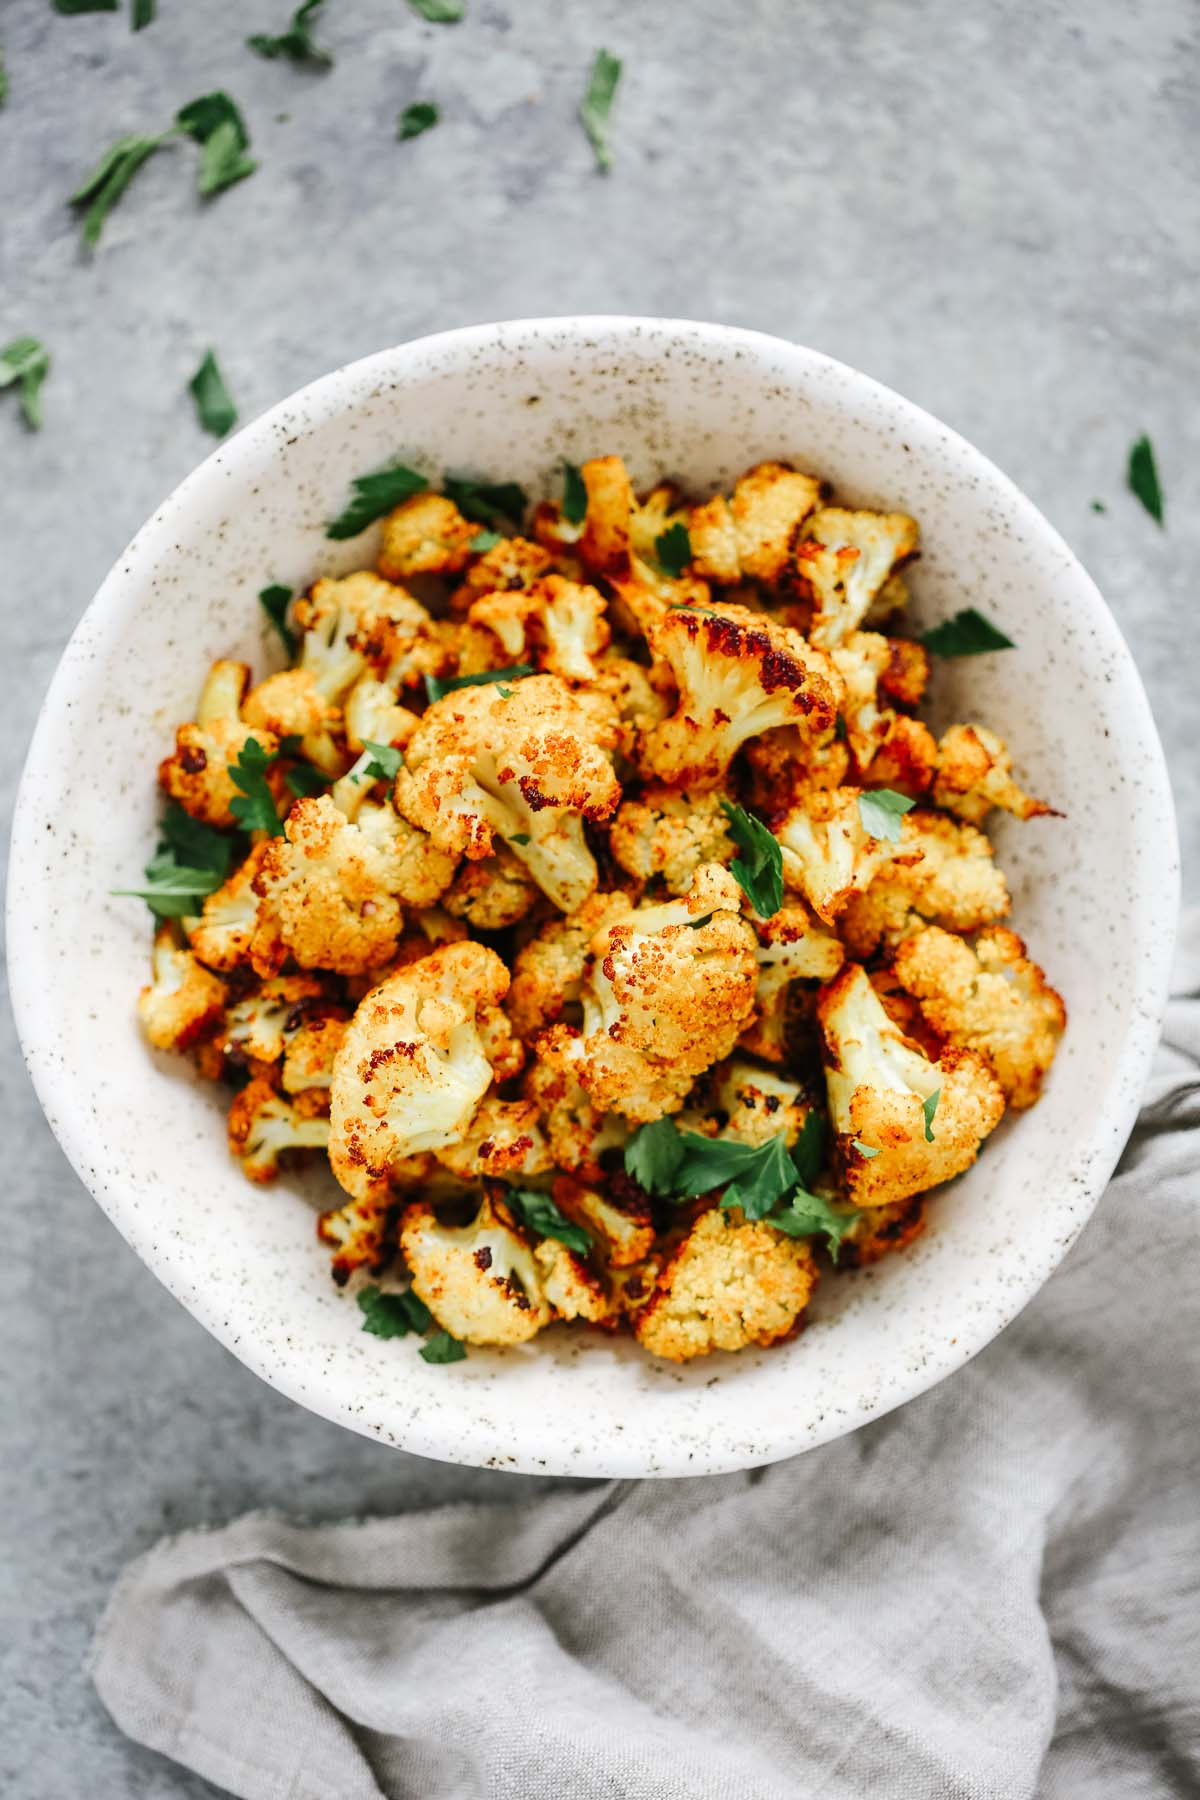 Overhead photo of roasted cauliflower in a white bowl.